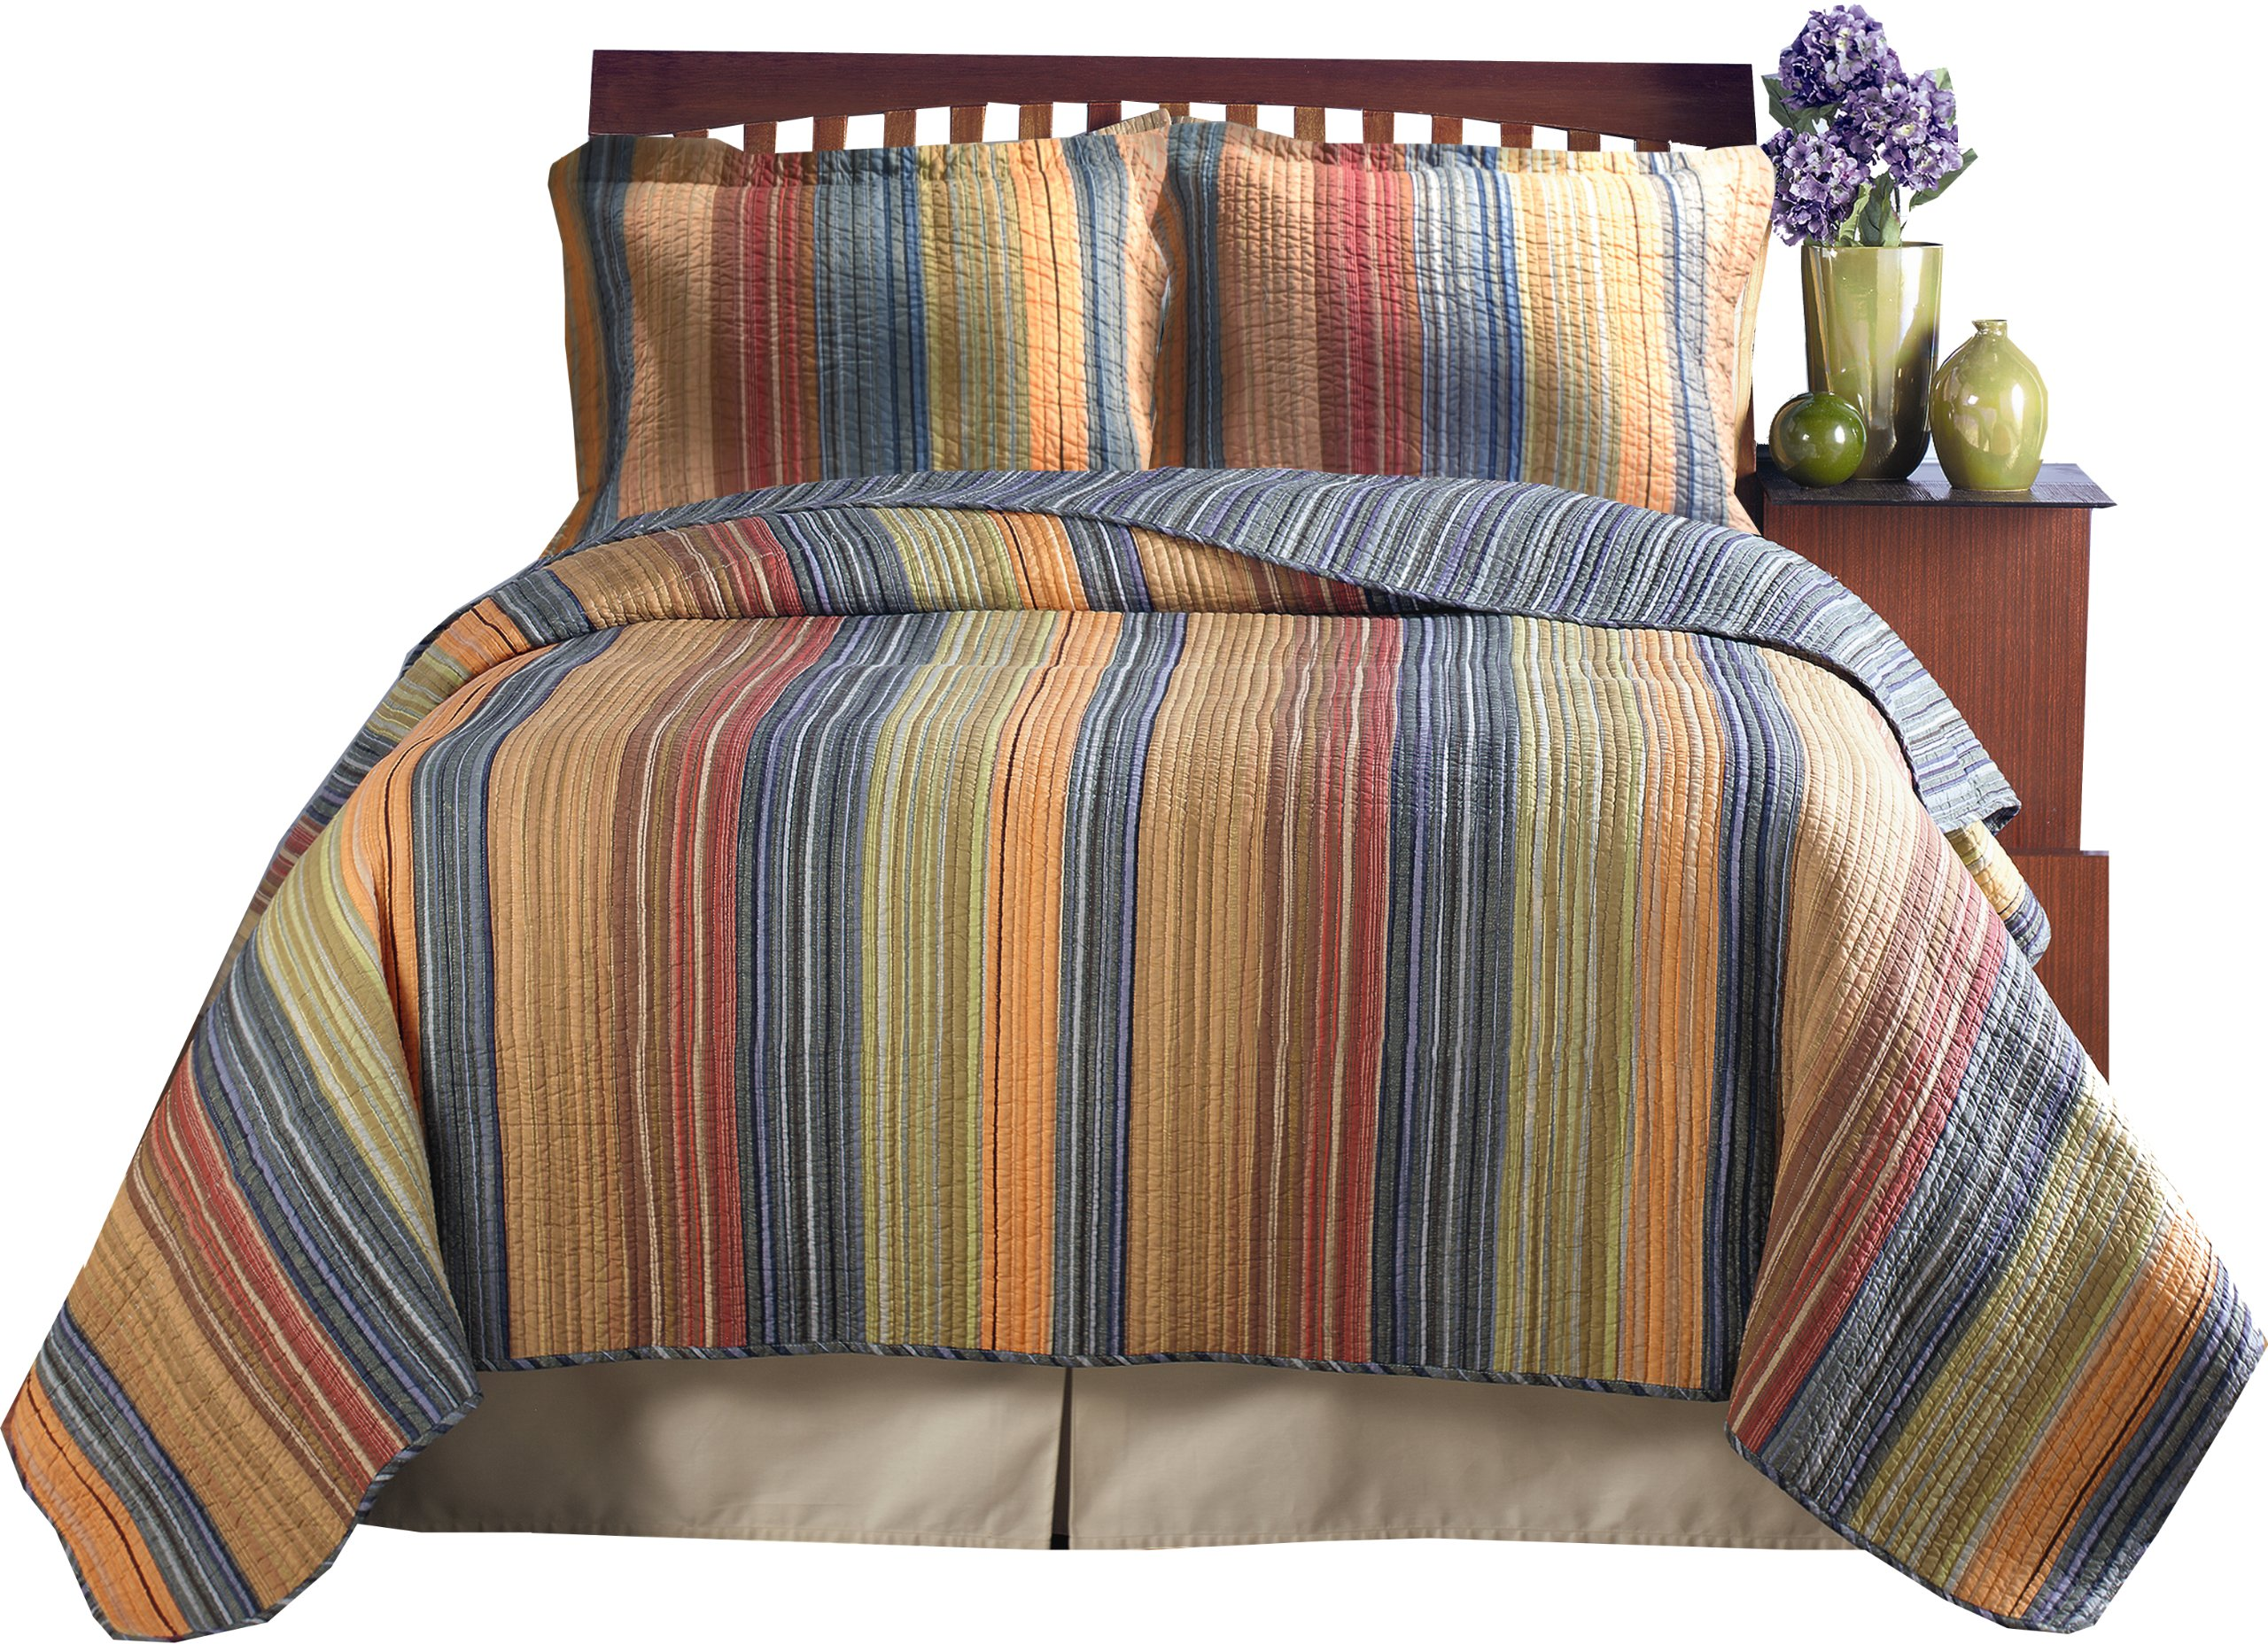 Greenland Home Katy King Quilt Set by Greenland Home